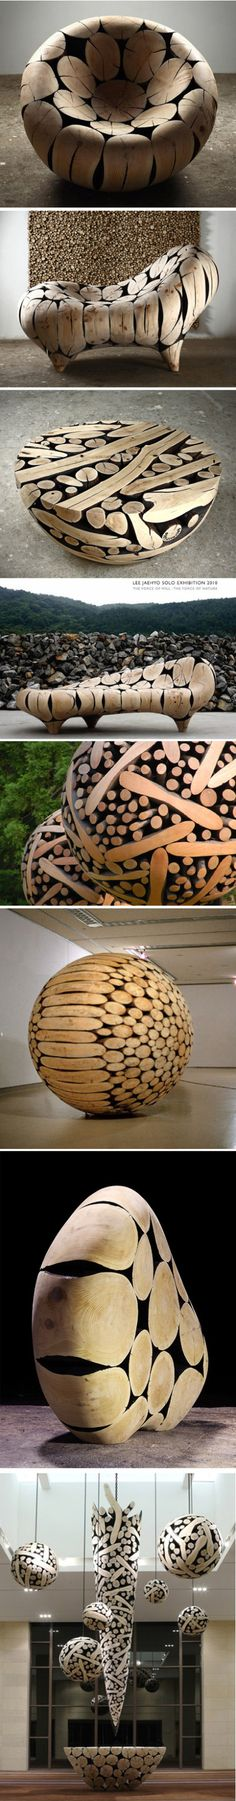 I so need something like this to the garden: Log Art http://www.leeart.name/Gallery/Wood/Default.asp Lee Jae-Hyo _ 1965 Born in hapchen, Korea